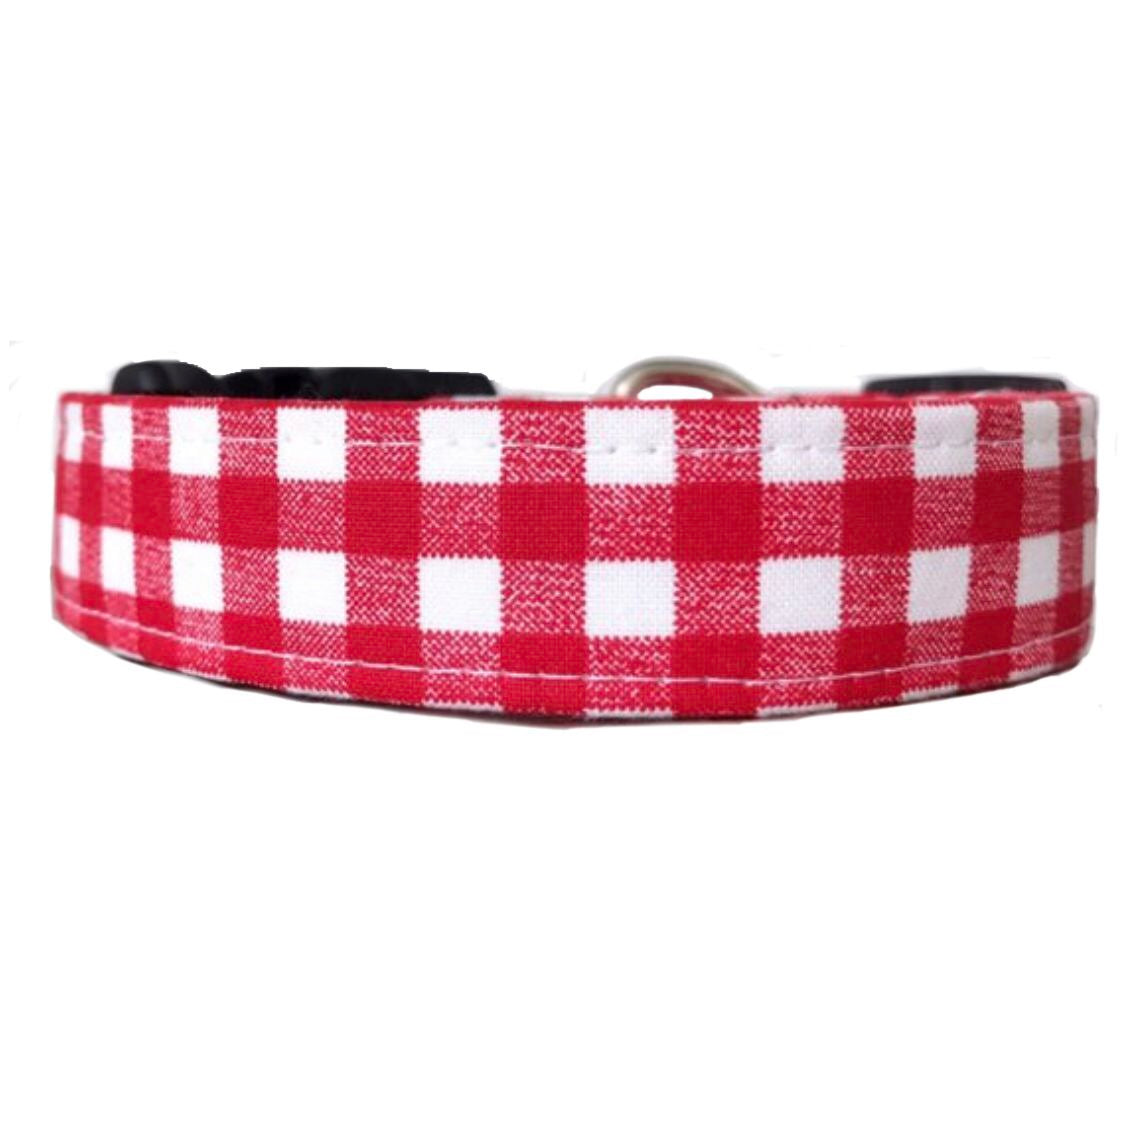 Red Gingham Dog Collar | Reese - Uptown Pet Wear